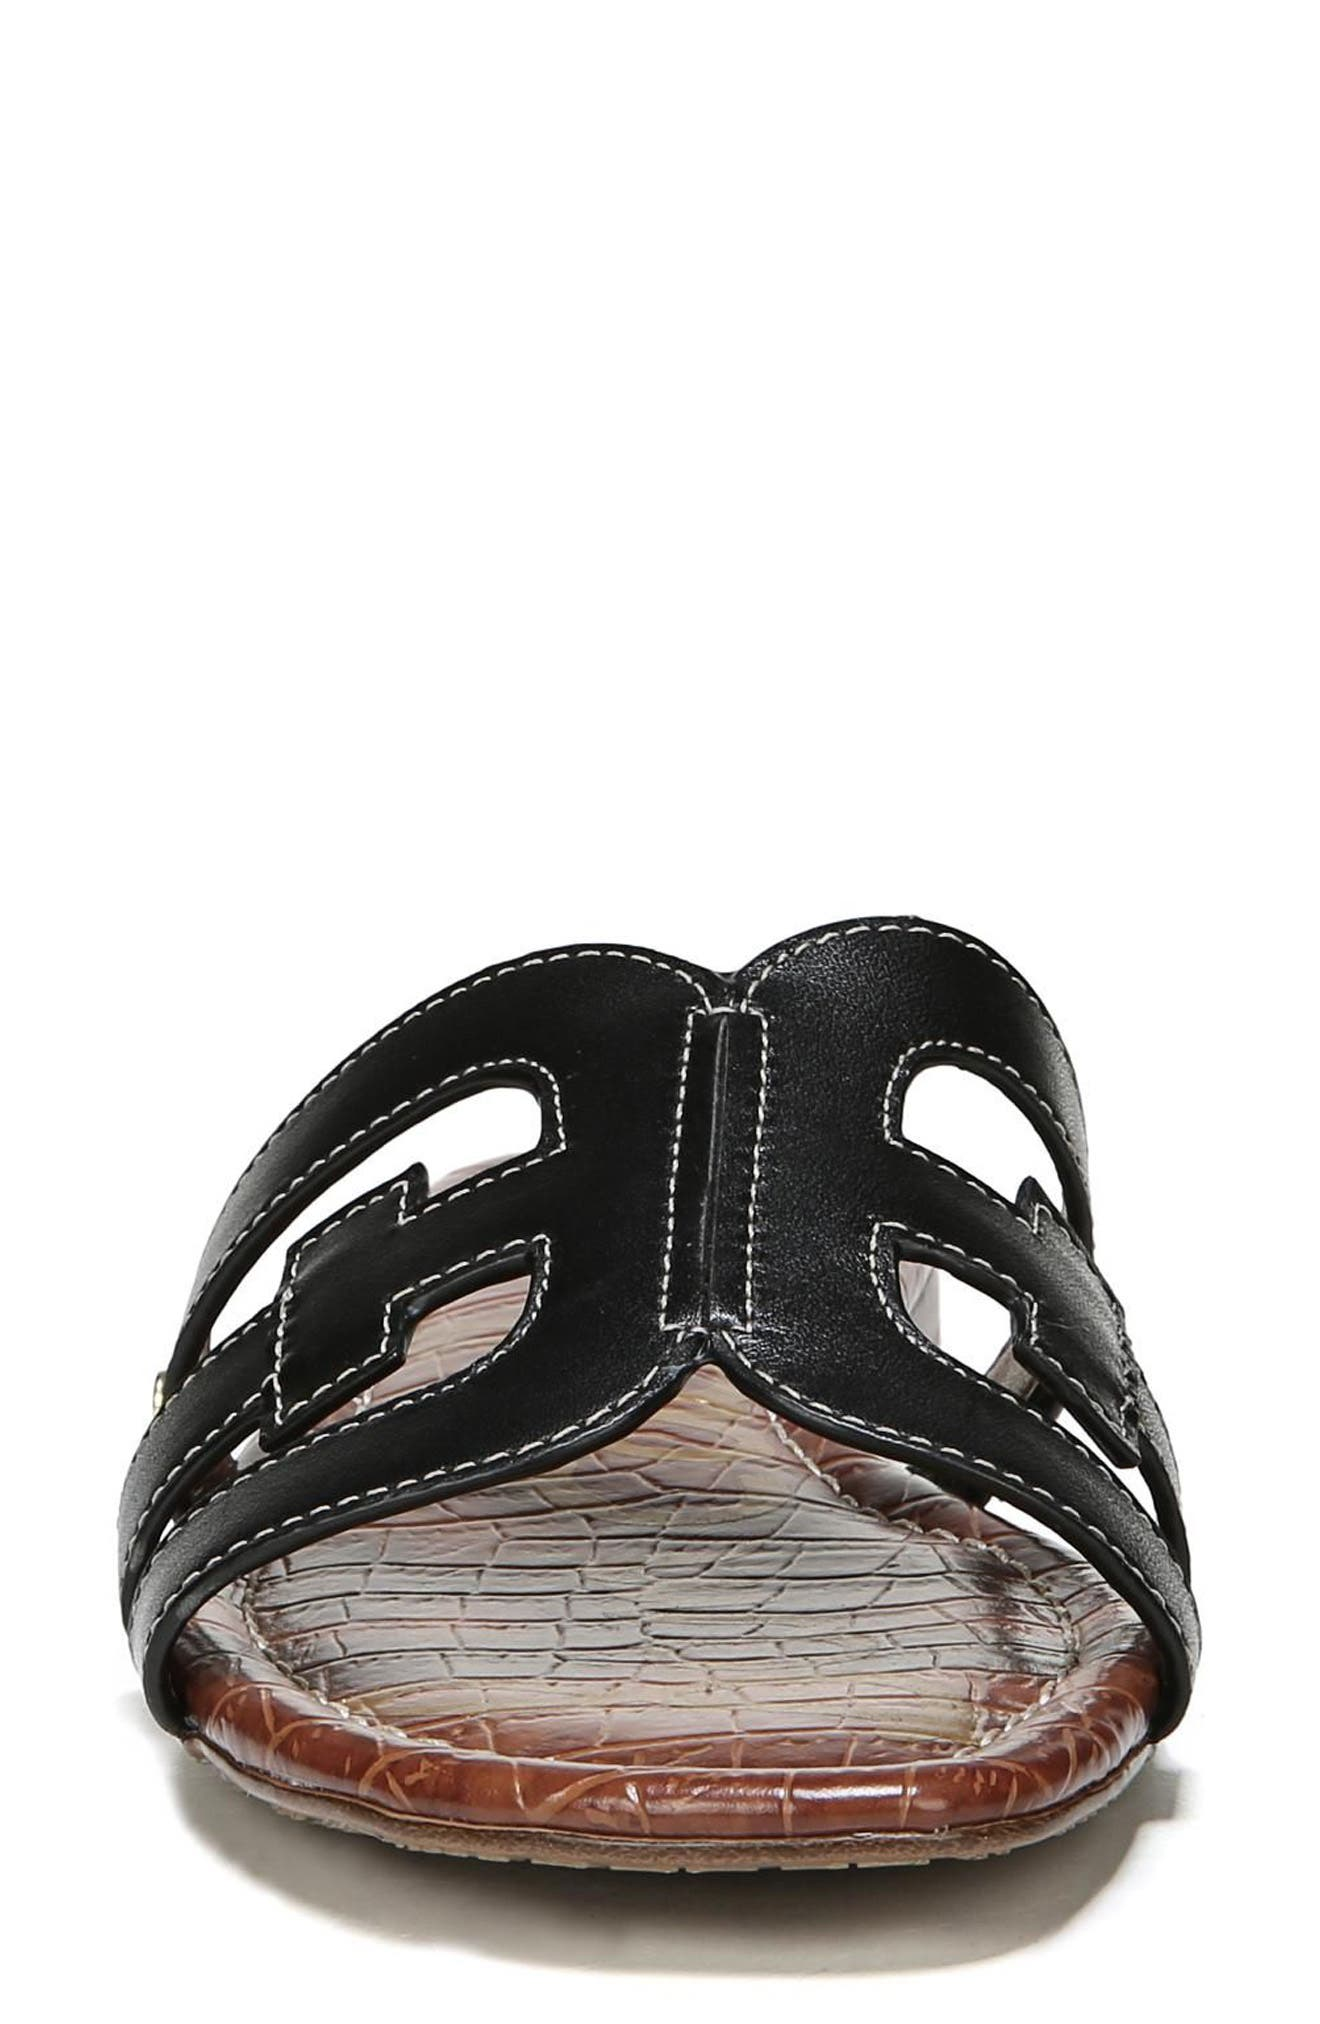 Bay Cutout Slide Sandal,                             Alternate thumbnail 4, color,                             BLACK LEATHER